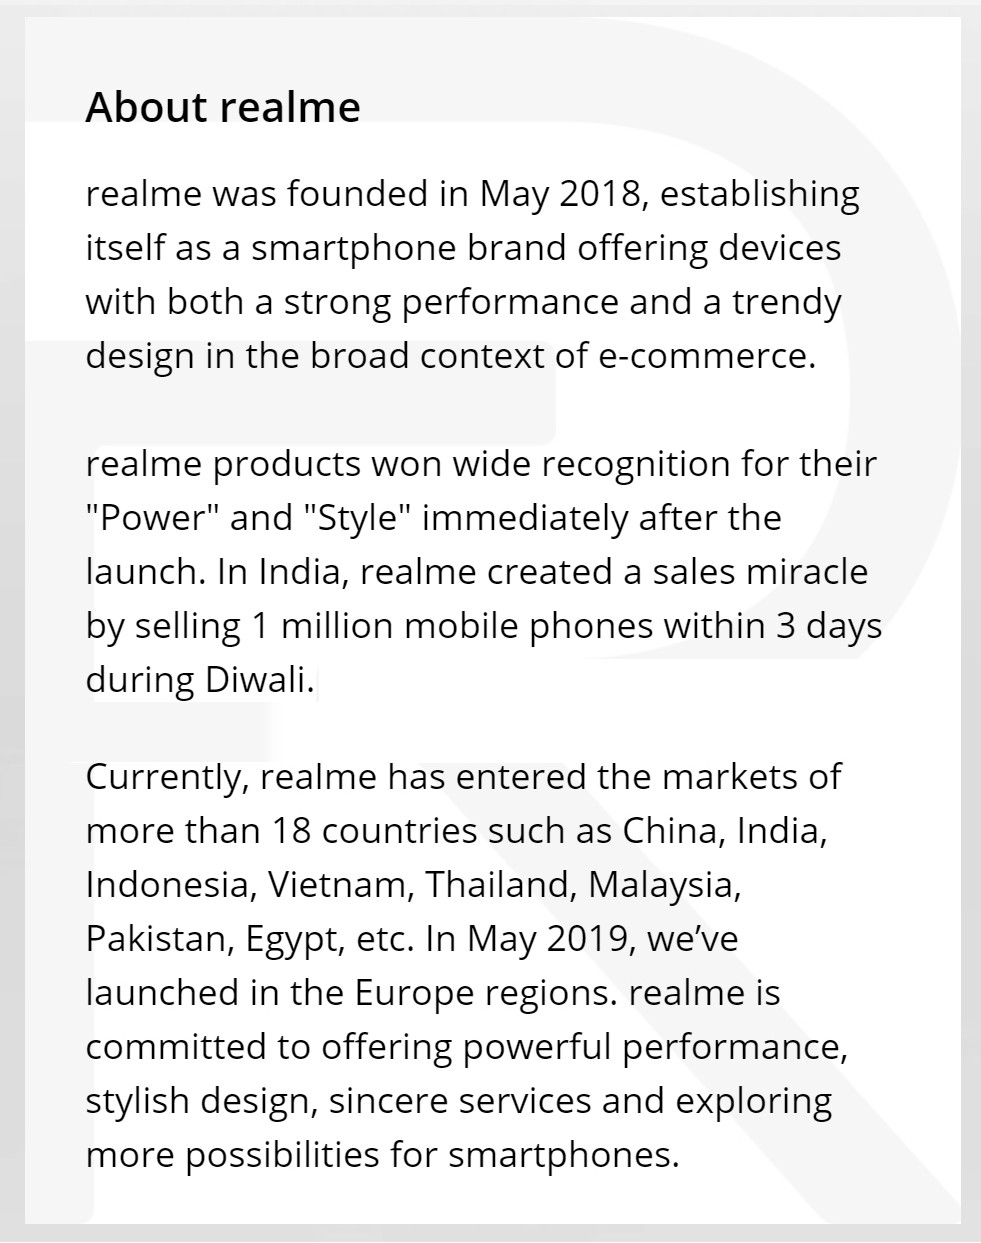 About realme